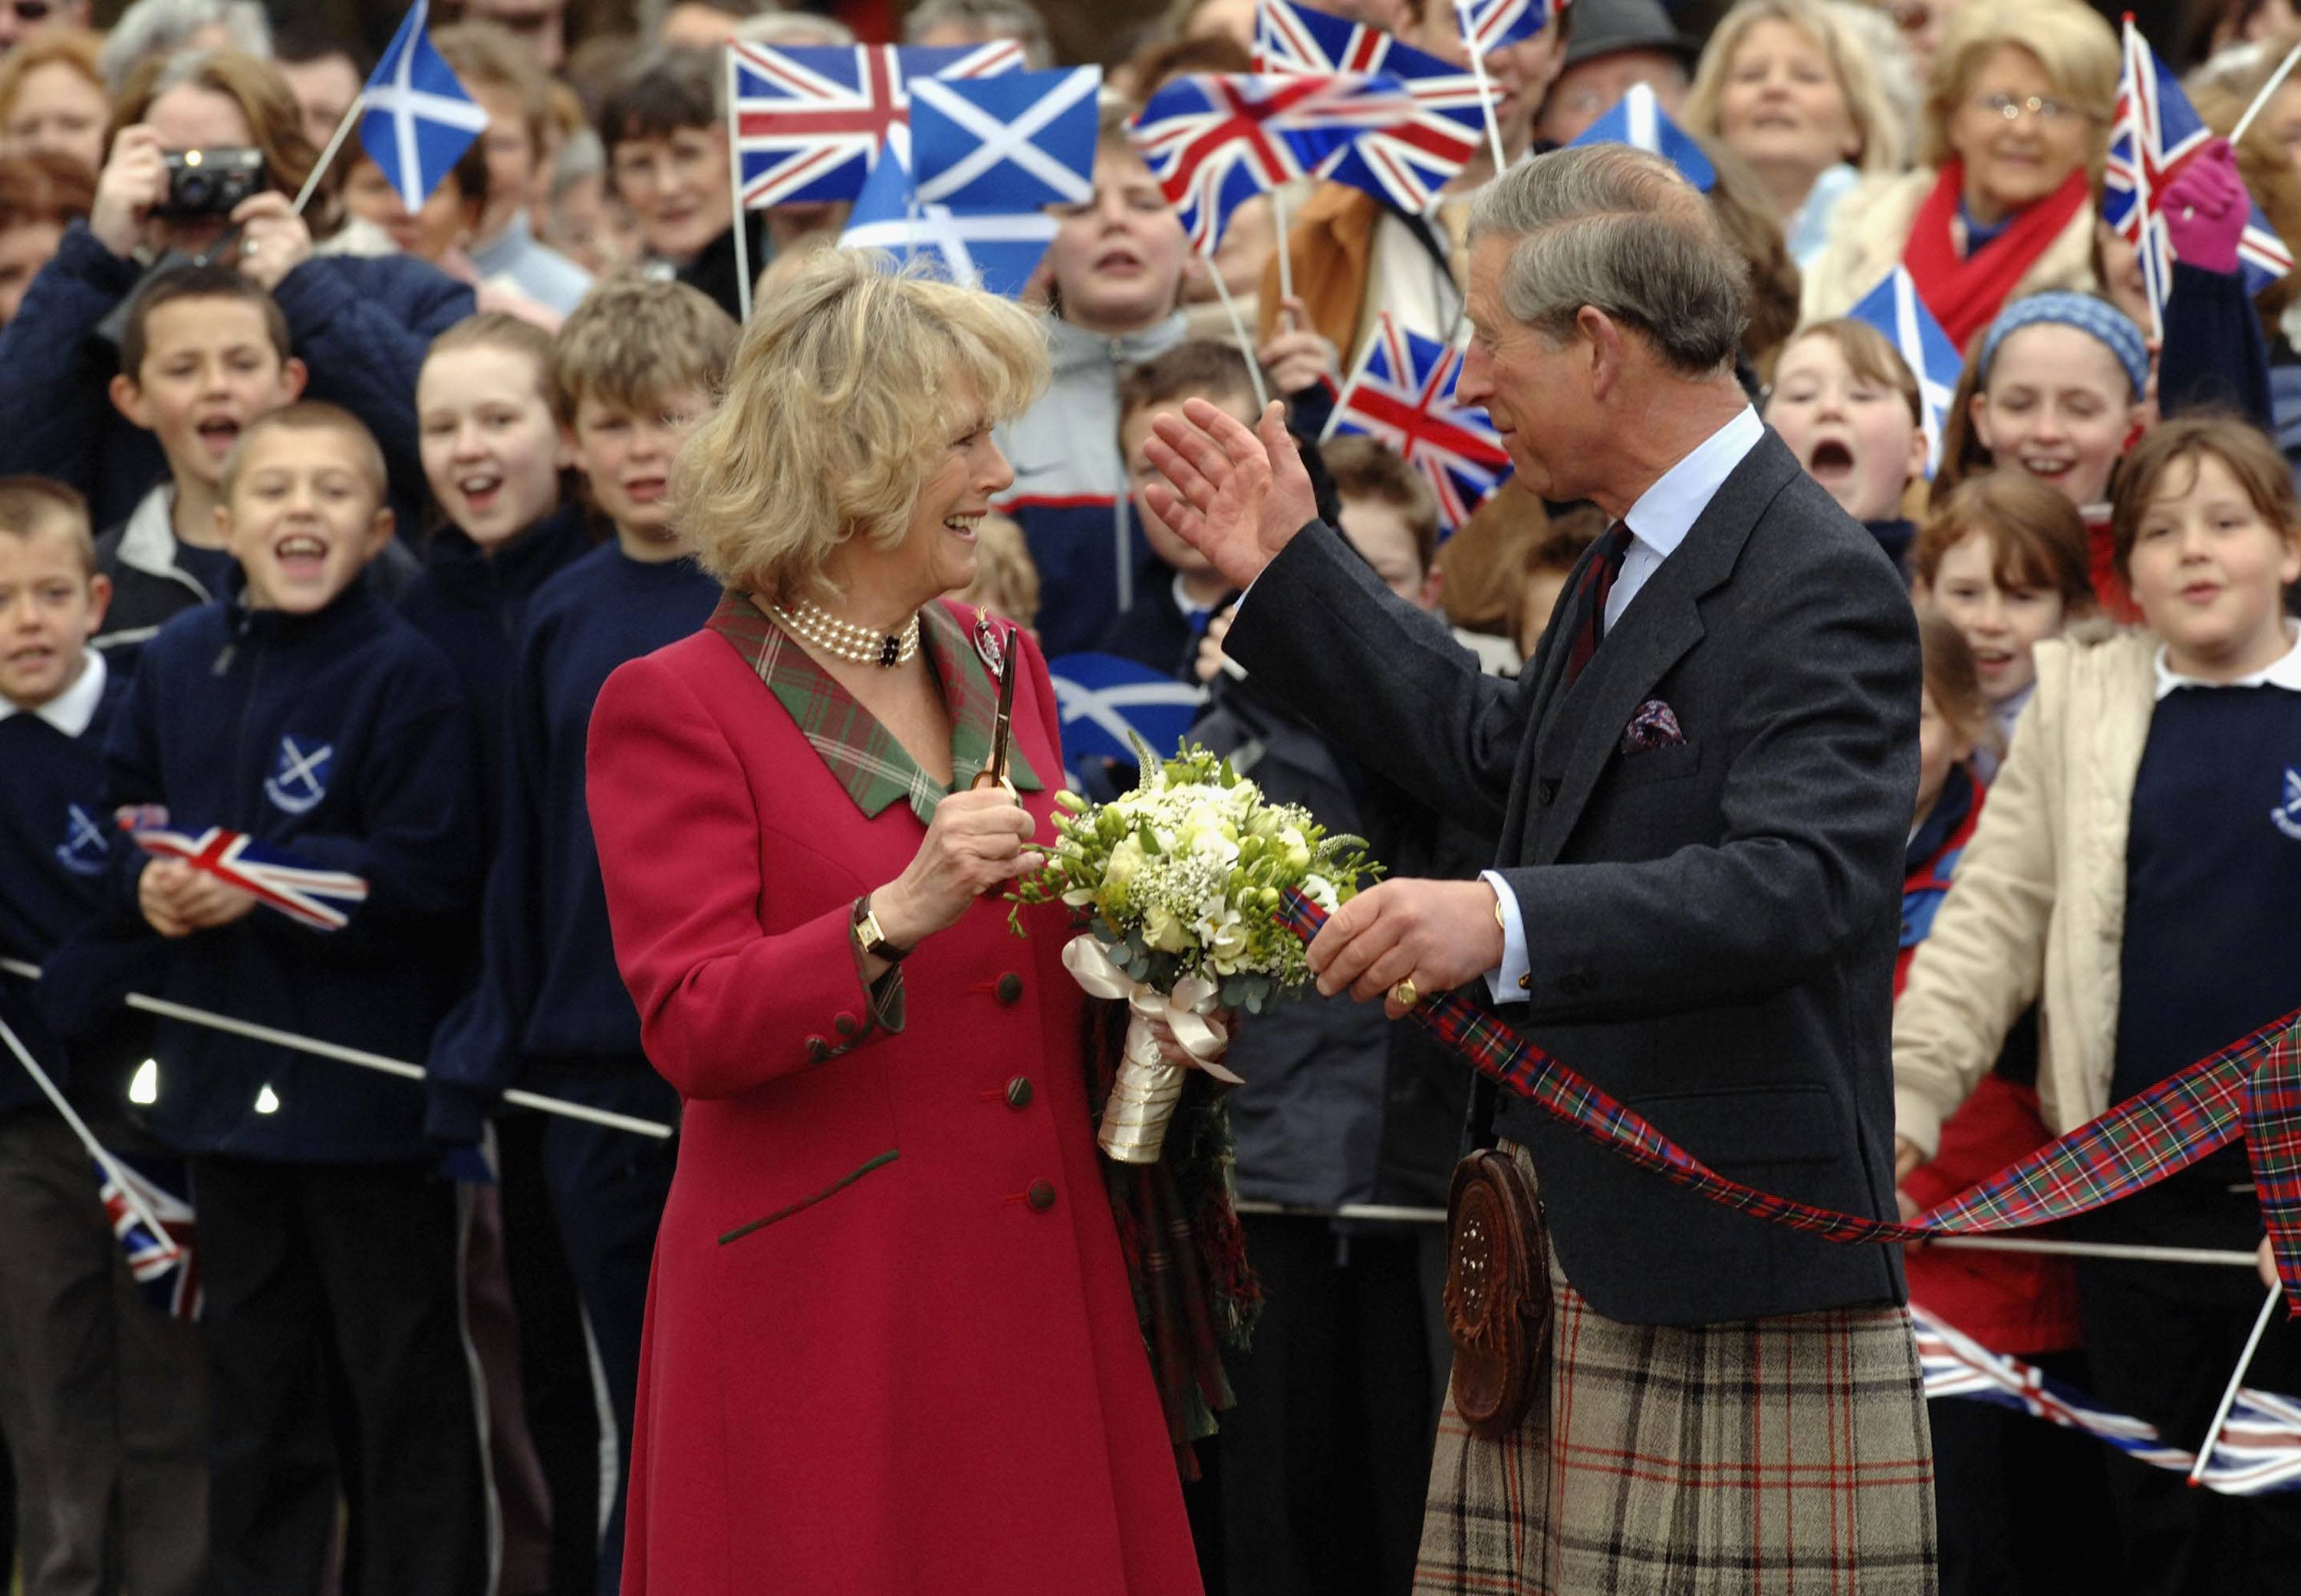 TRH Prince Charles, the Prince of Wales, and his wife Camilla, the Duchess of Cornwall, in their role as the Duke and Duchess of Rothesay, take time out from their honeymoon at Birkhall on the Queen's Aberdeenshire estate, to undertake their first joint official engagement opening Monaltrie Park children's playground in Ballater near Balmoral on April 14, 2005 in Aberdeenshire, Scotland.